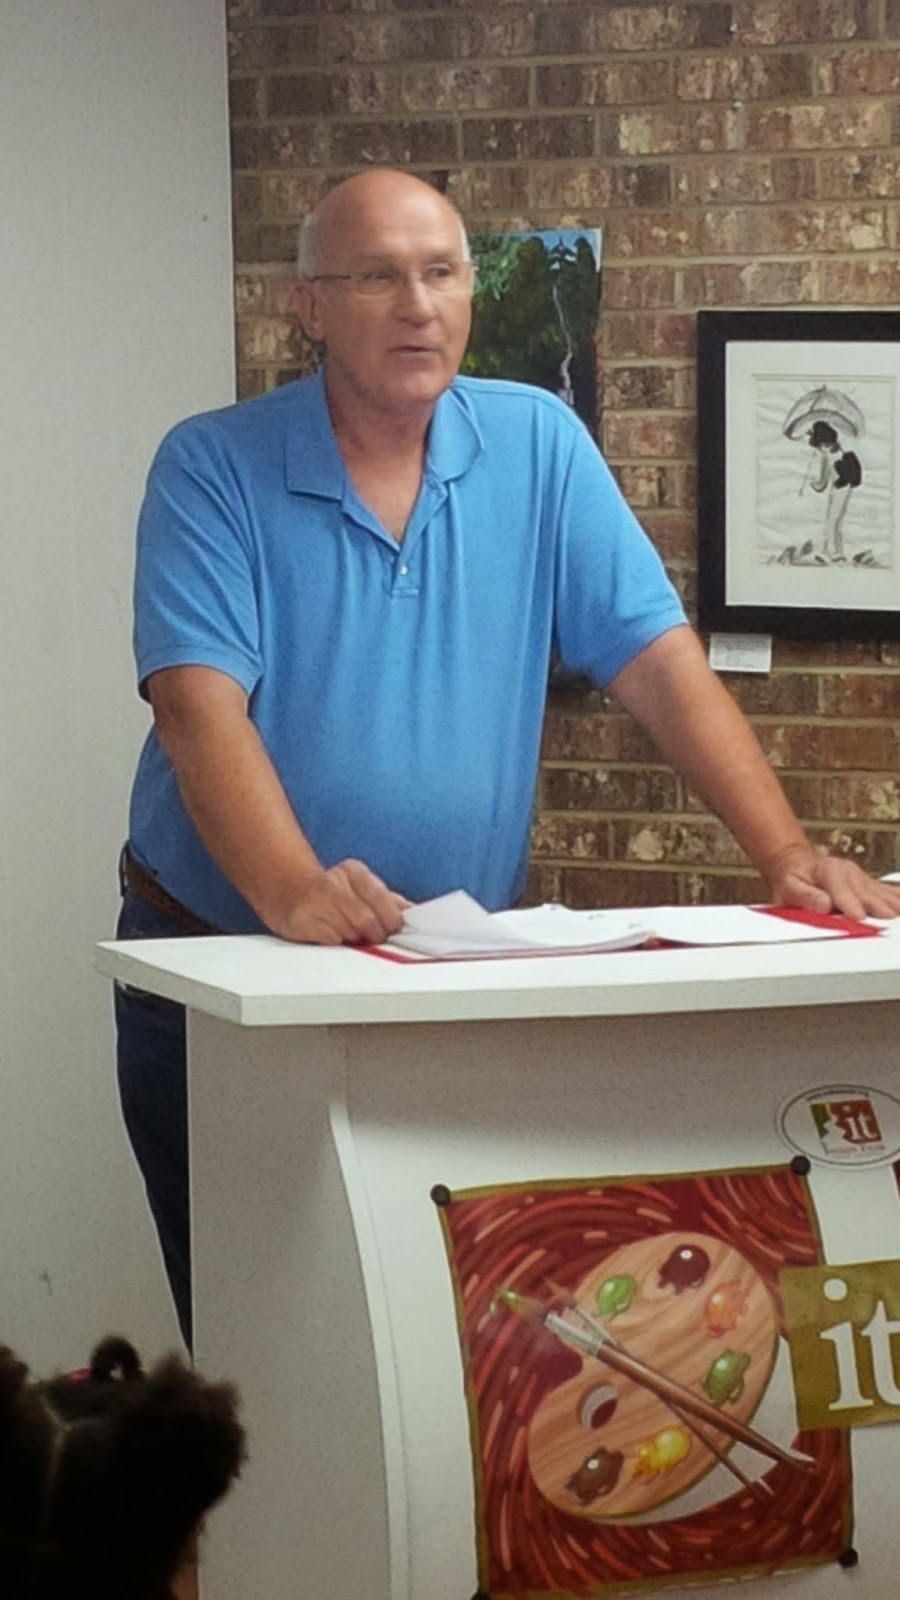 Dwight Roth, Indian Trail Cultural Arts Center